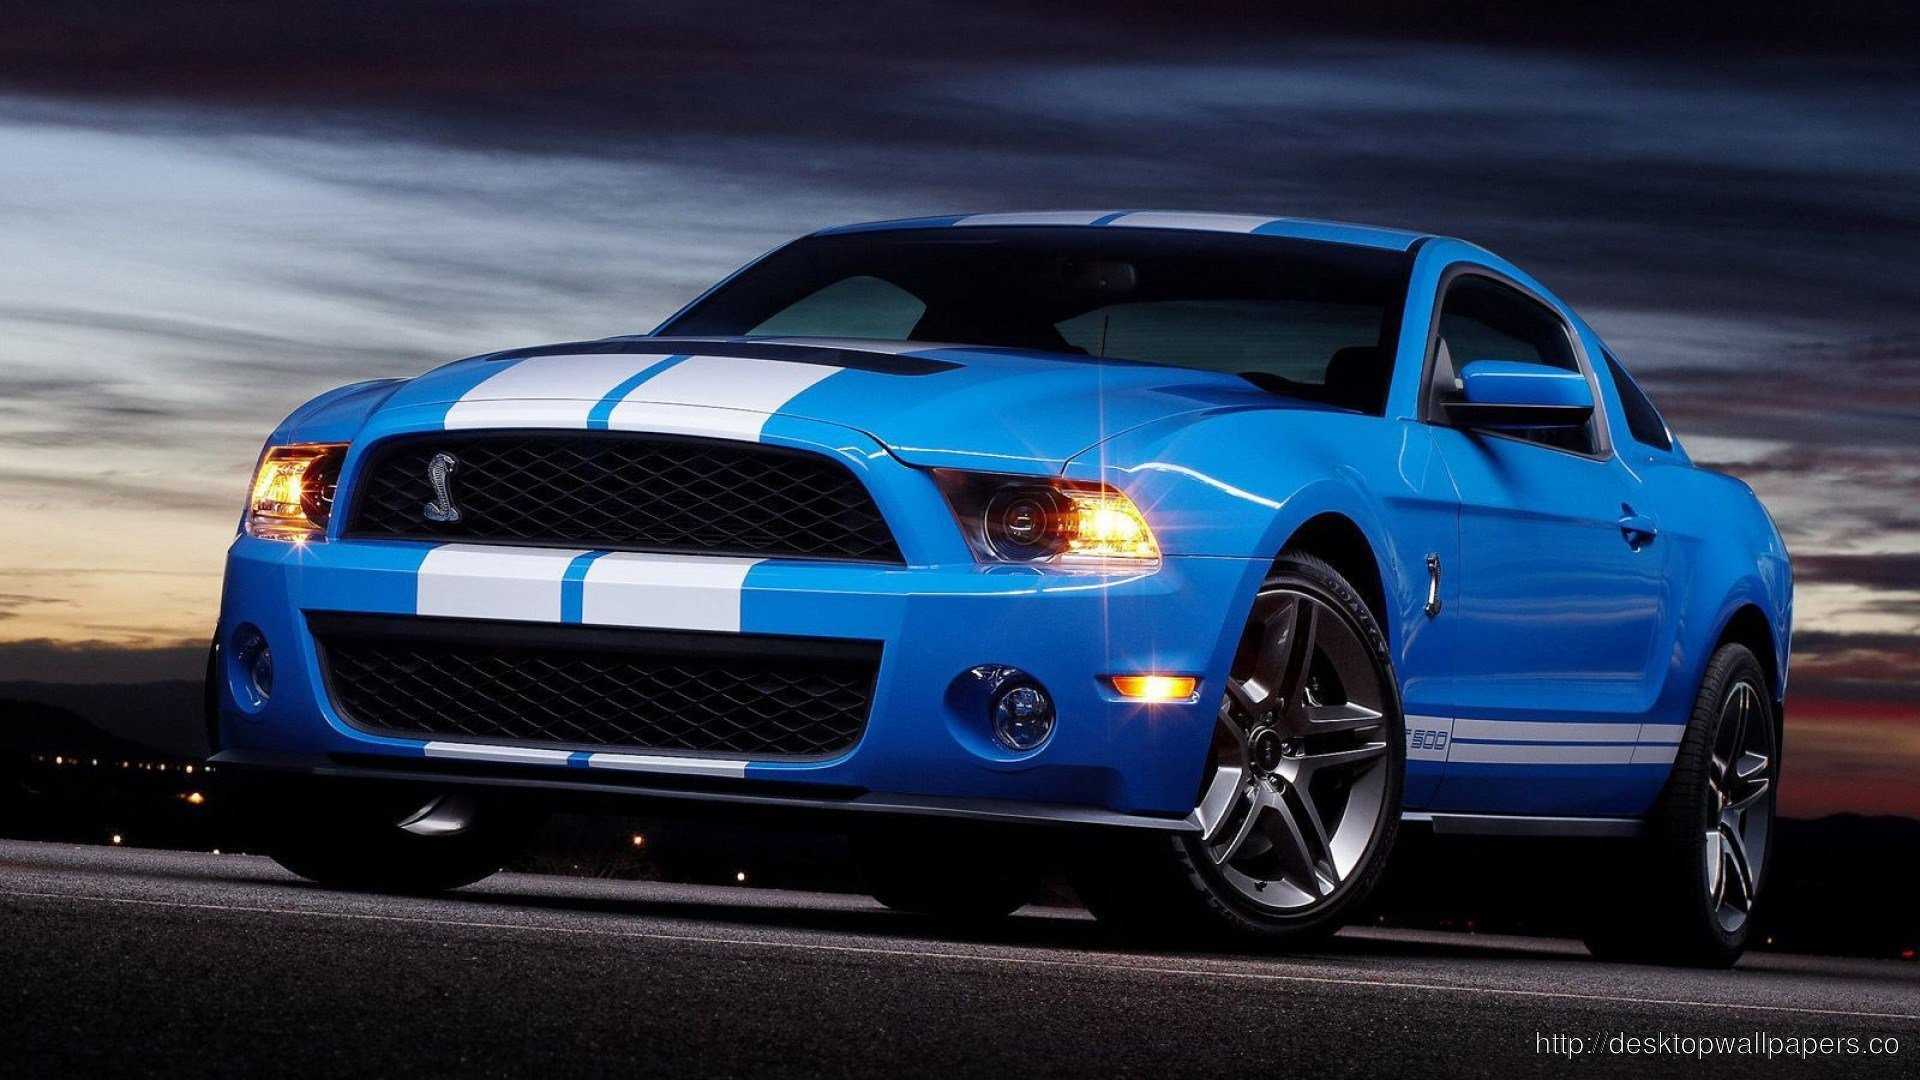 Latest Ford Mustang High Quality Desktop Wallpapers Free Free Download